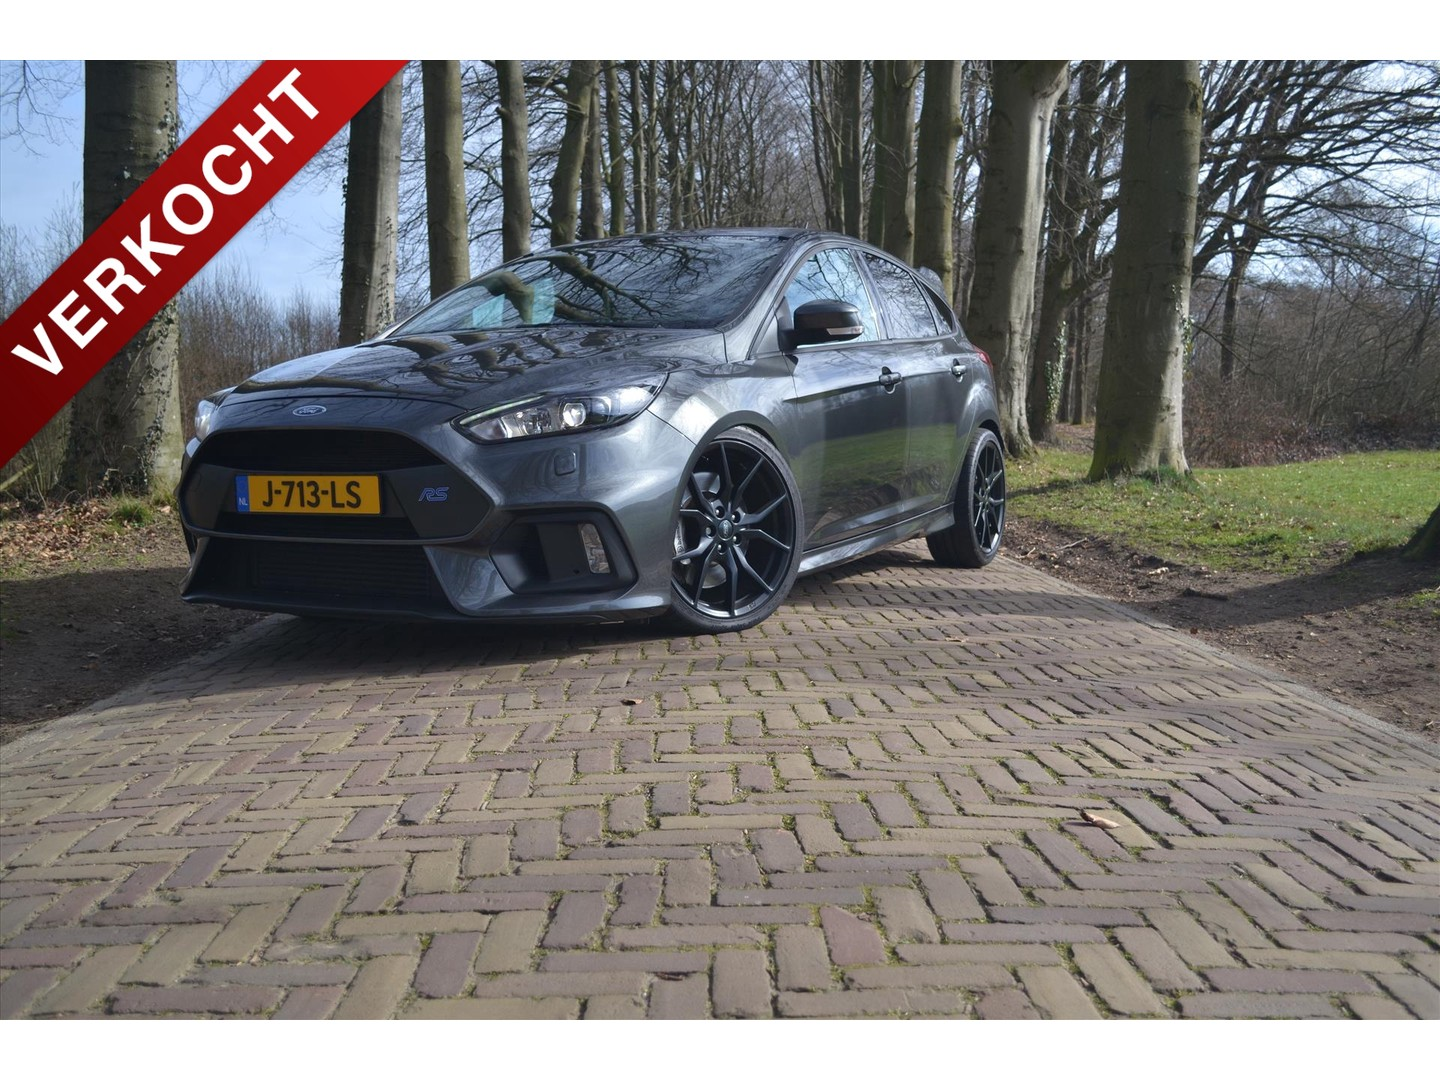 Ford Focus Rs 2.3 ecoboost 350pk full options